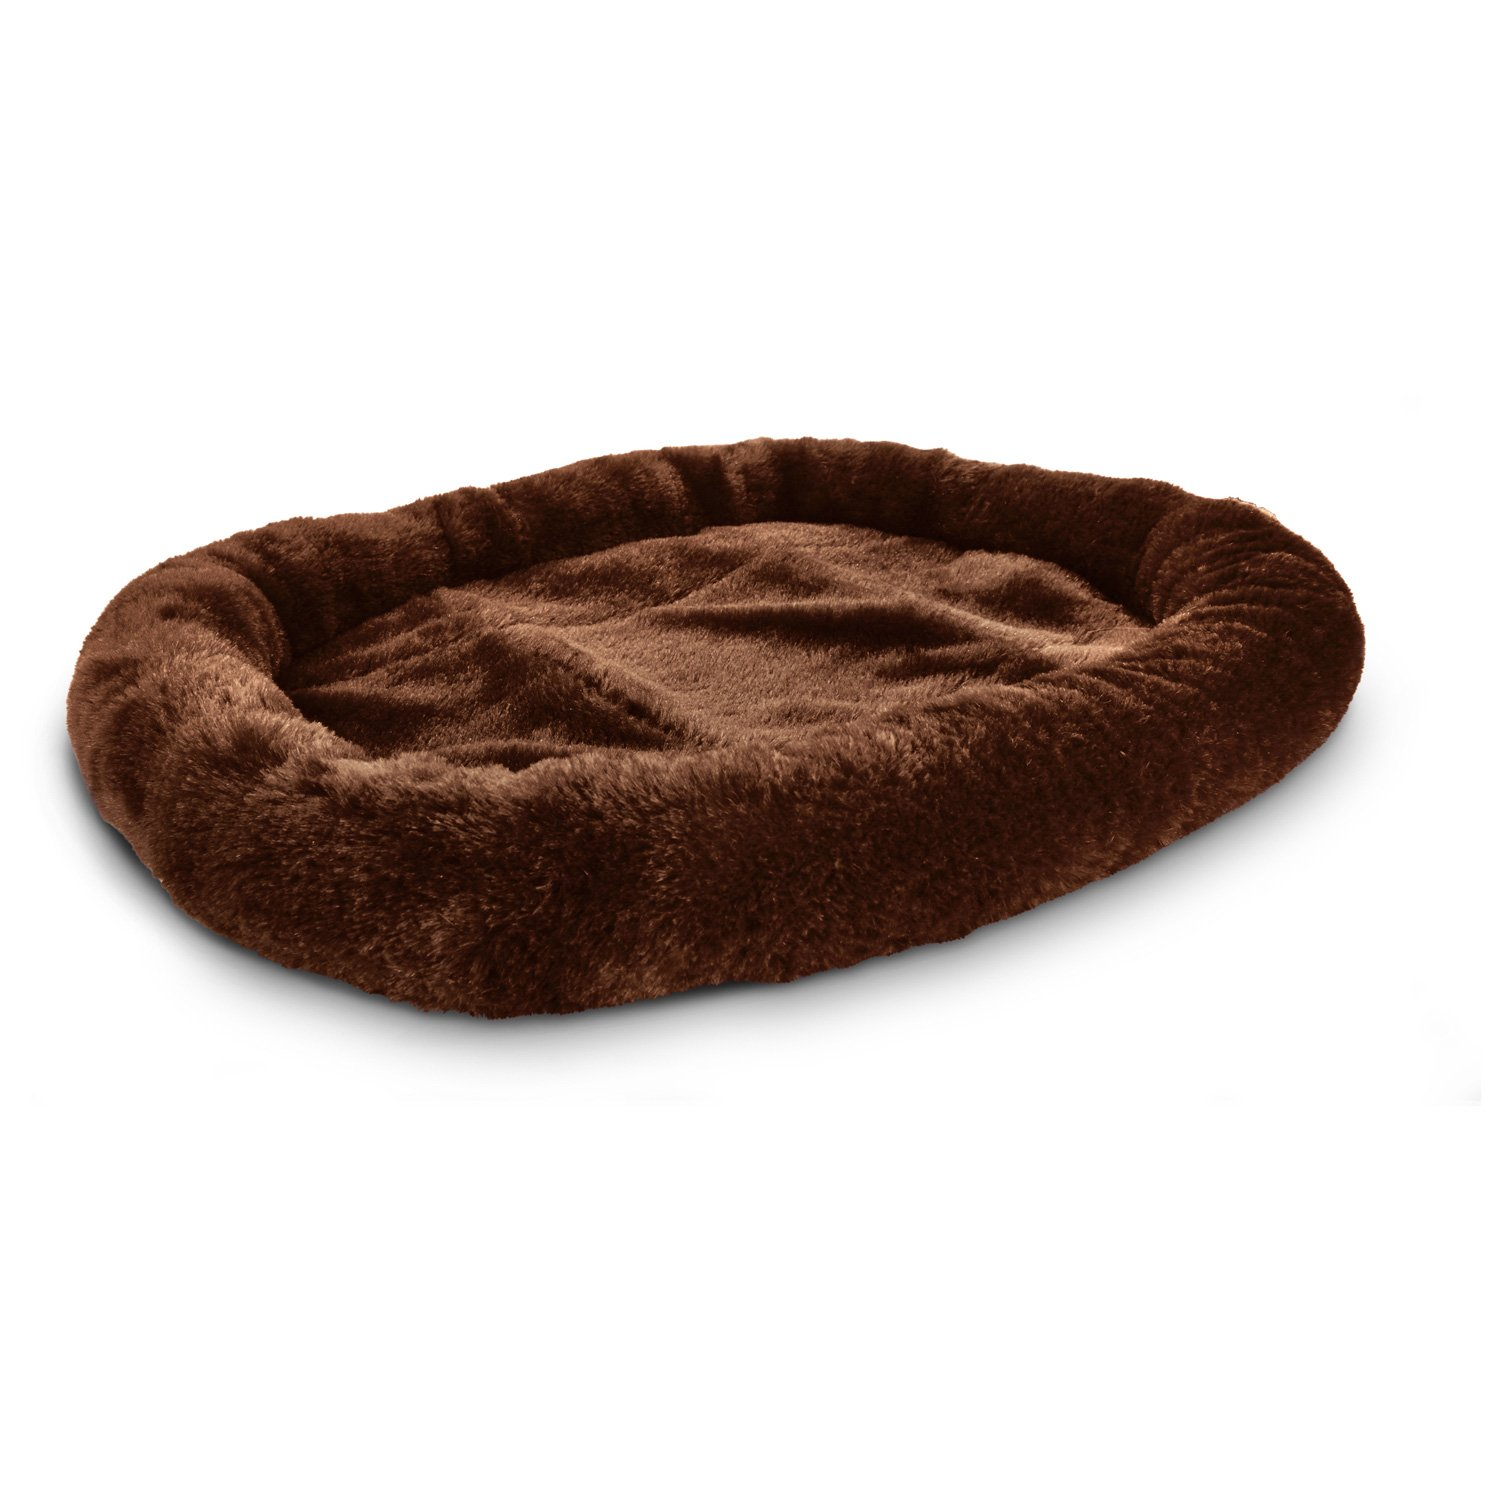 Petco Ultra Soft Brown Oval Donut Cat Bed